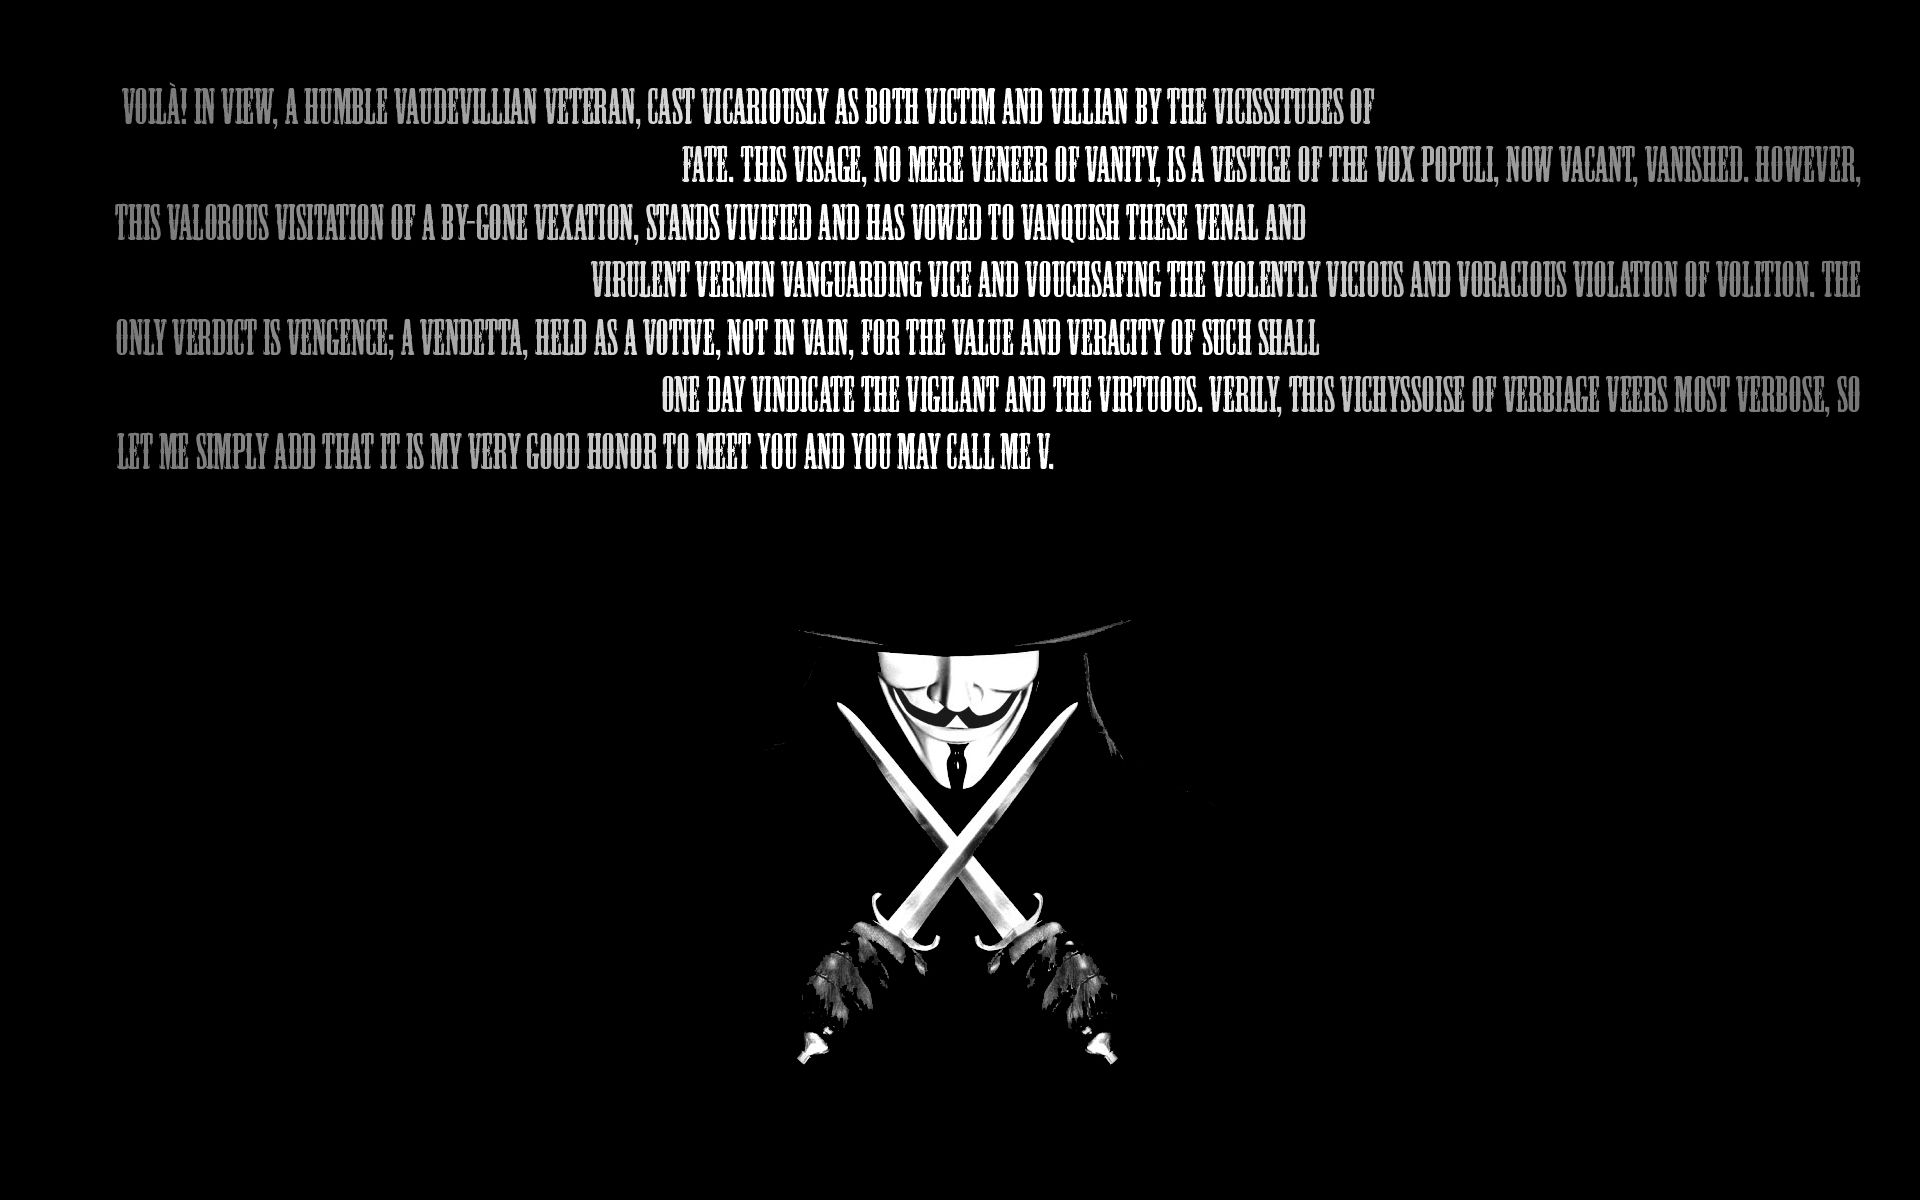 V For Vendetta Quotes Wonderful Vendeta Quote With Background  Inspiring Quotes And